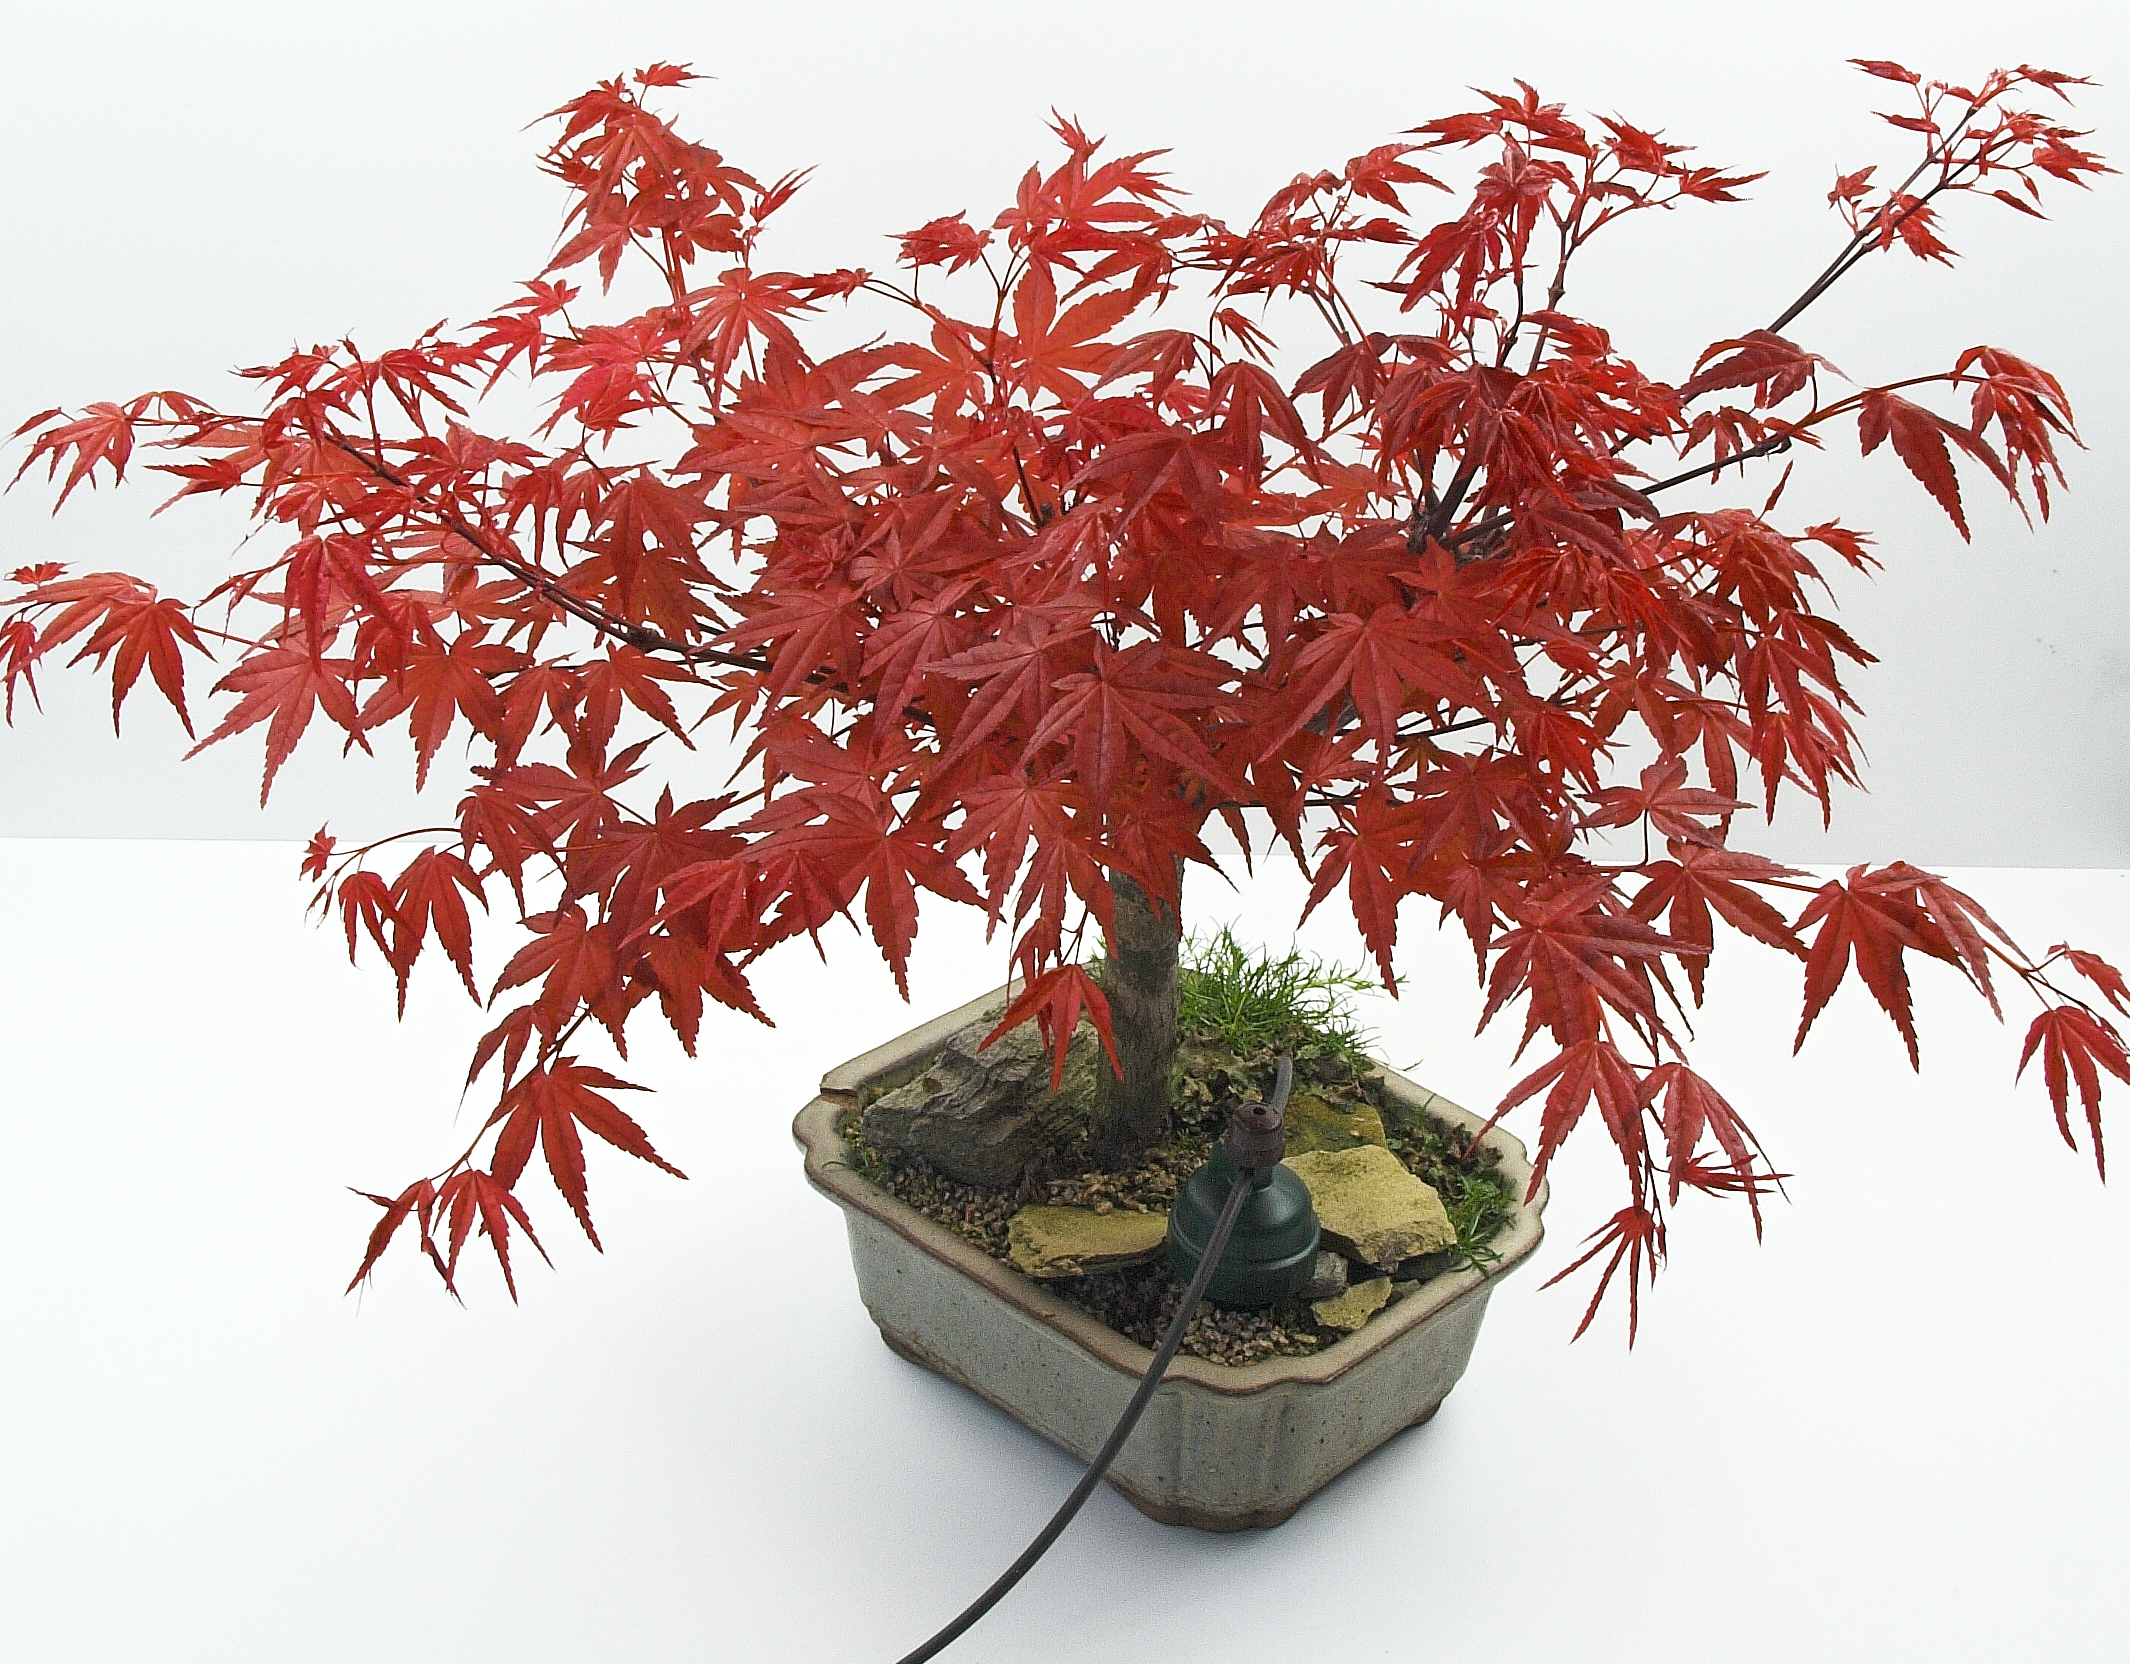 Acer palm